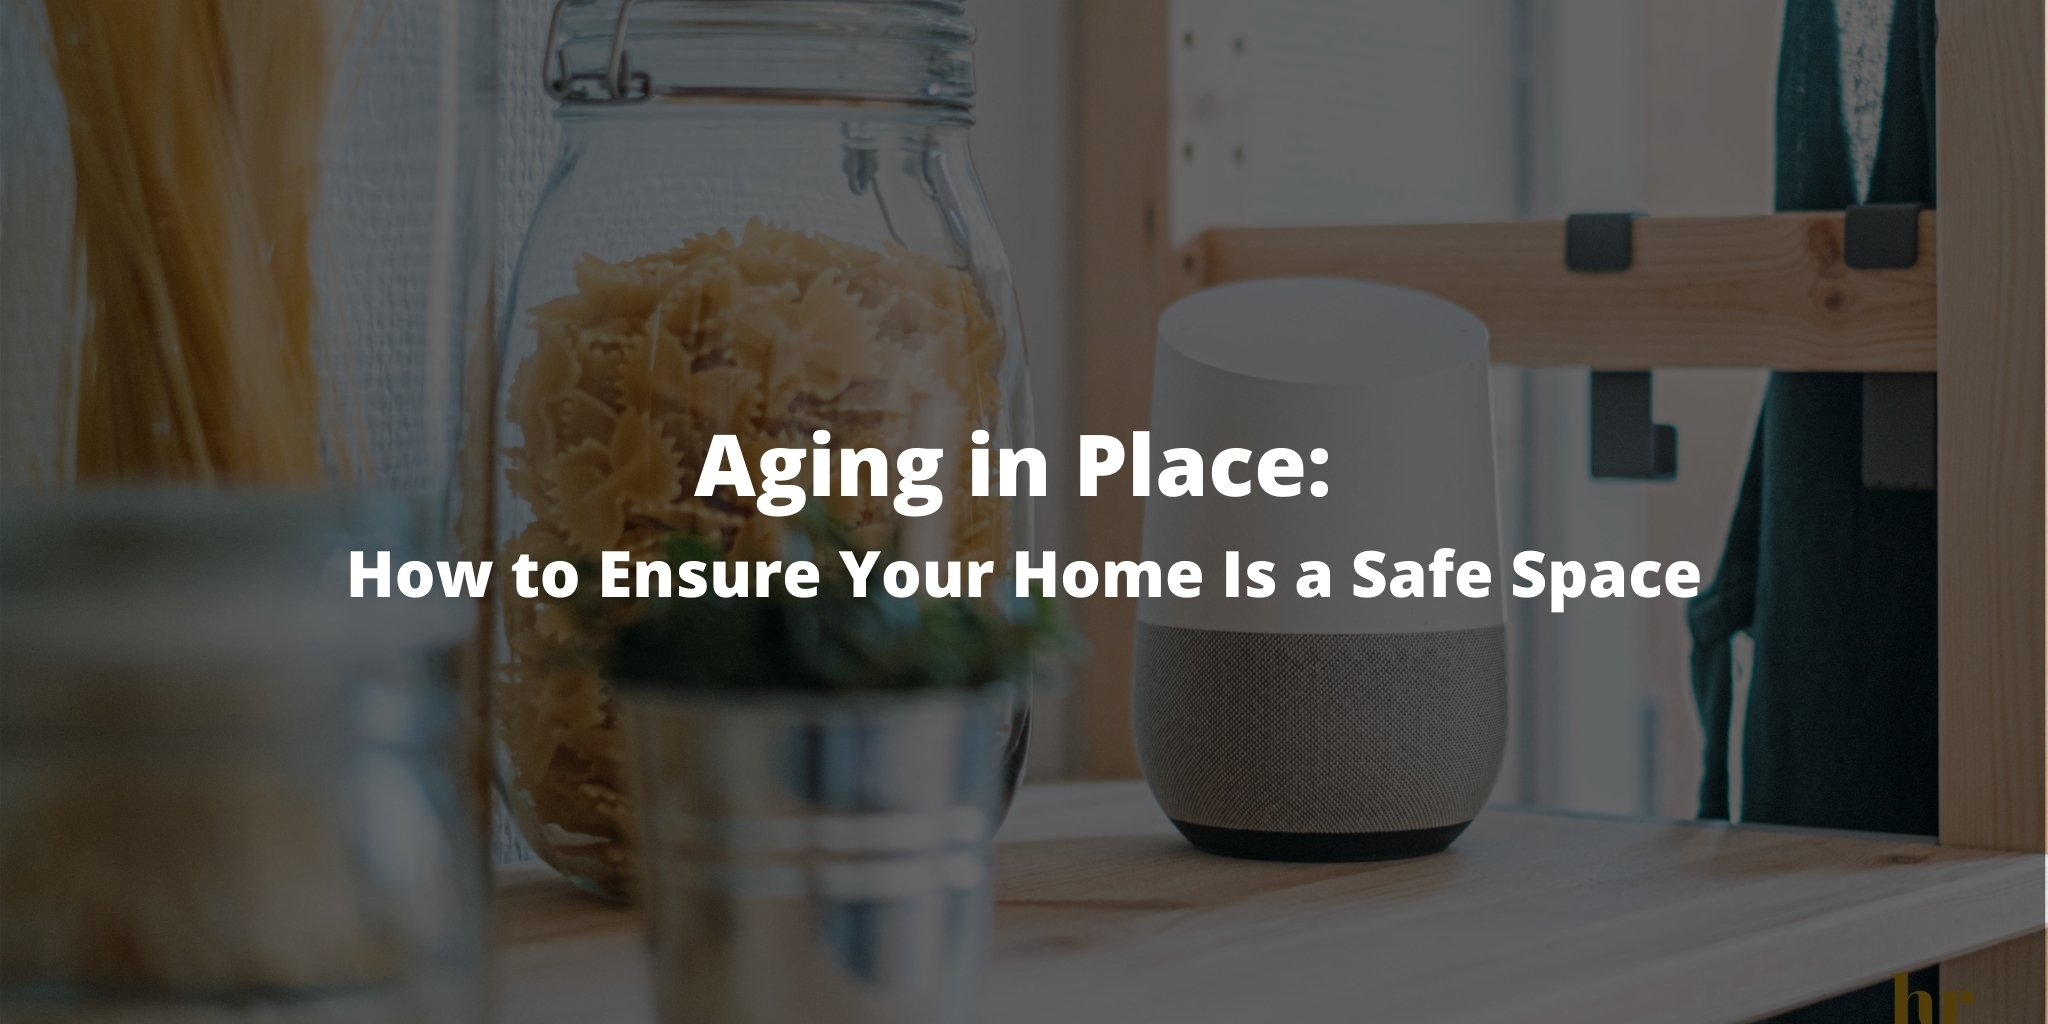 Aging in Place: How to Ensure Your Home Is a Safe Space